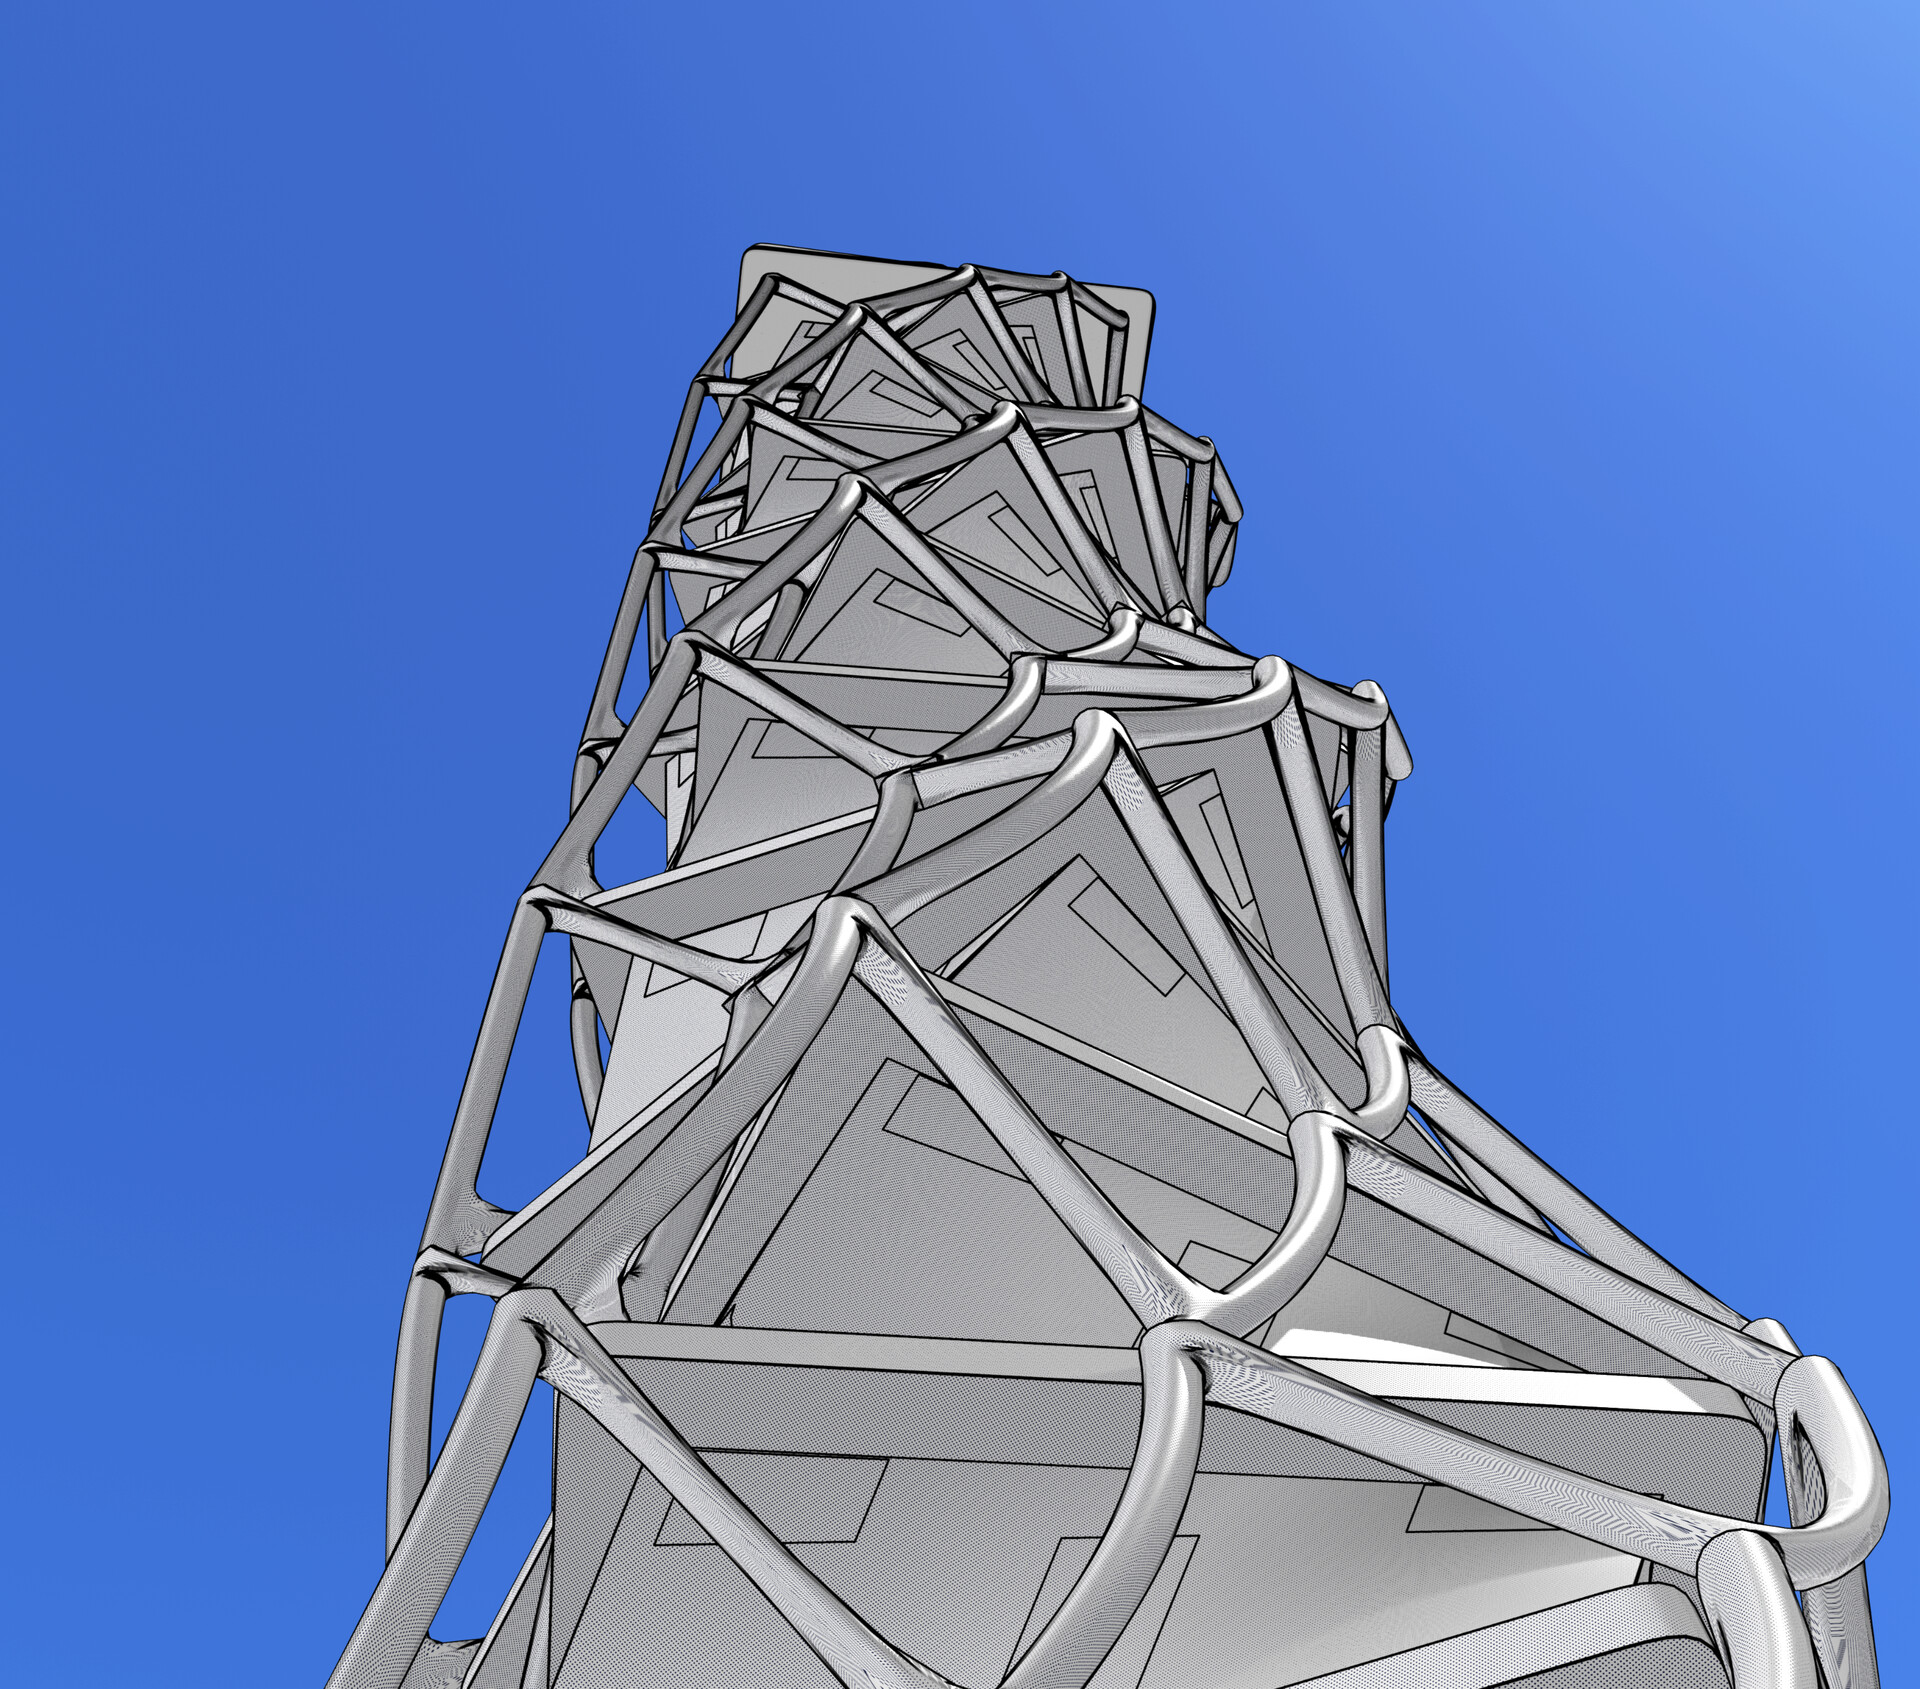 Procedurally-generated twisted tower with procedural external structural grid - worm's eye view - cel edge shader